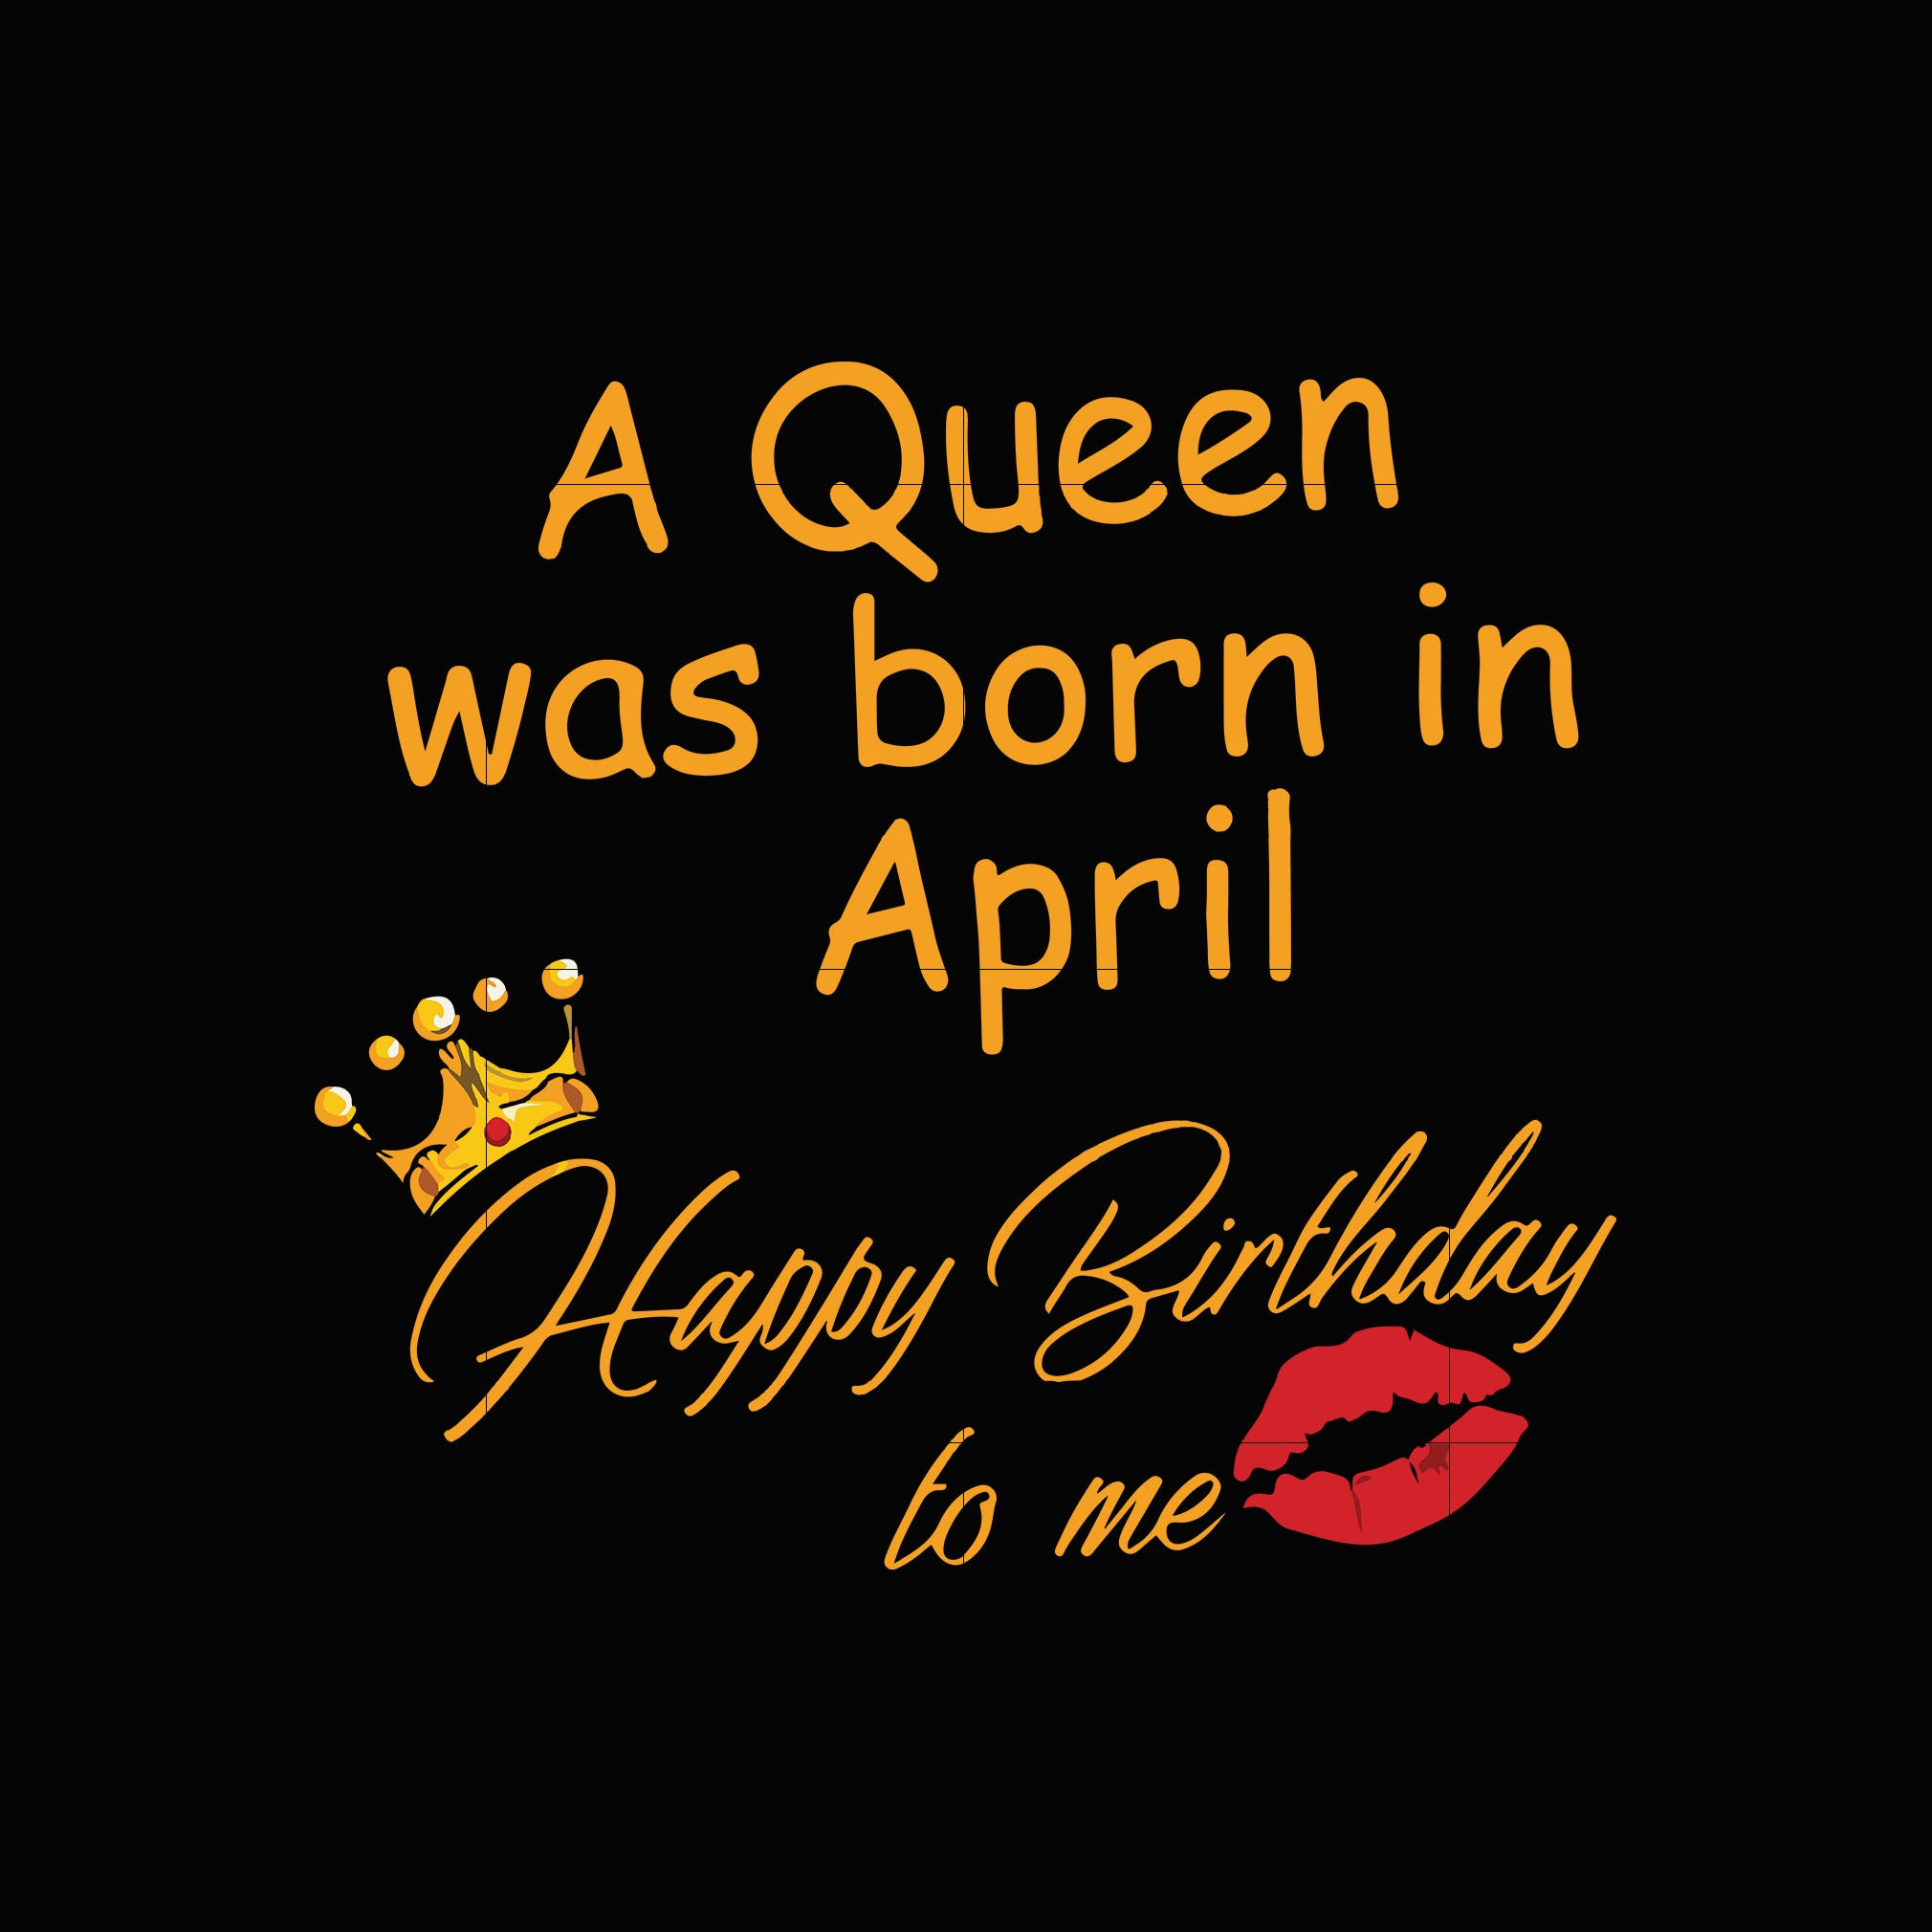 A Queen was born in April happy birthday to me svg,dxf,eps,png digital file